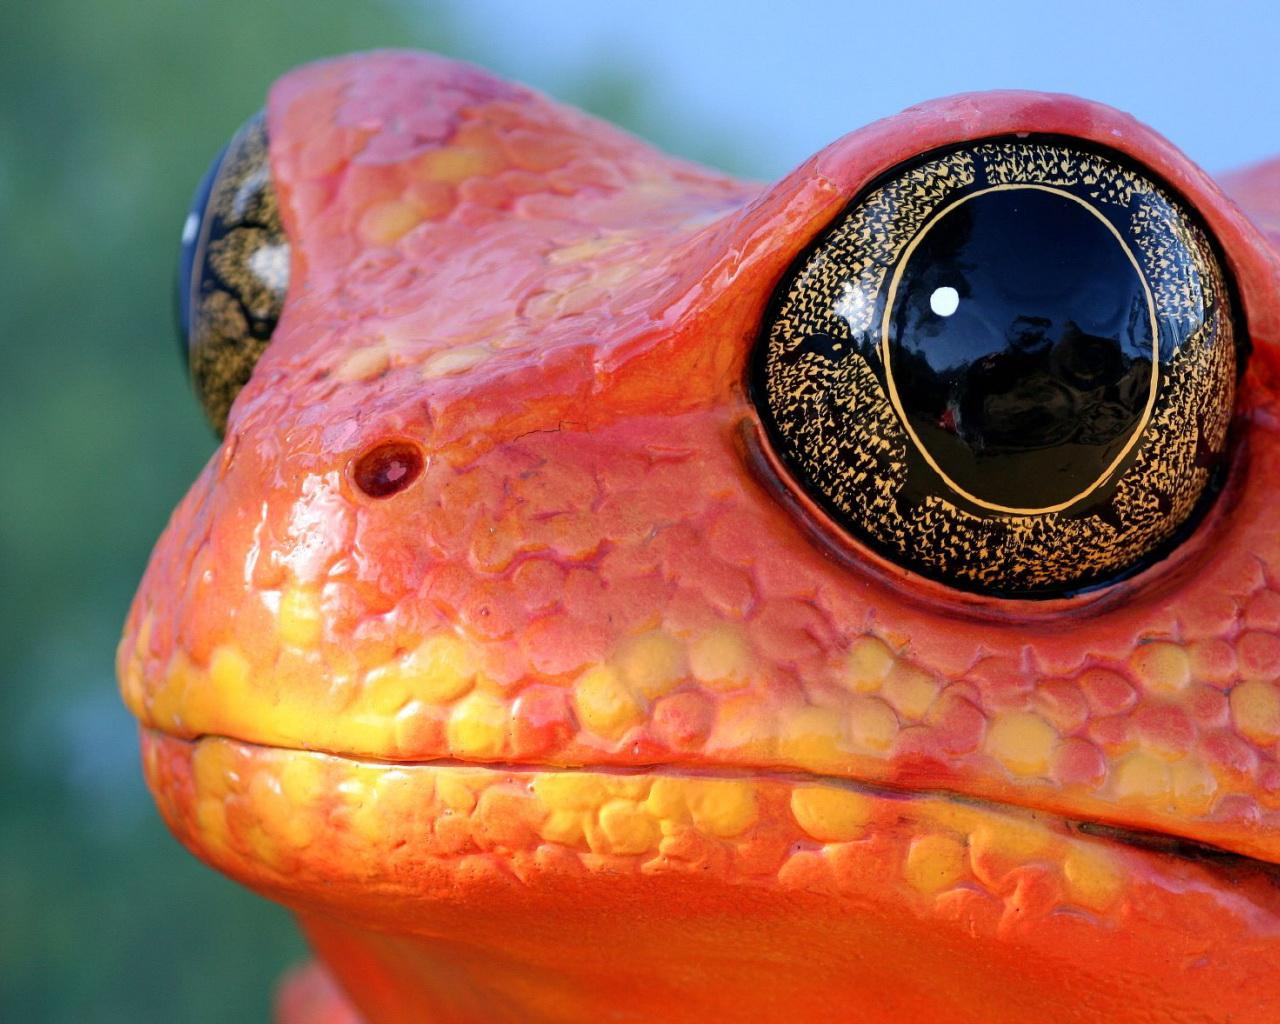 Cool Orange Frog Wallpapers Cool Orange Frog HD Wallpapers Cool 1280x1024